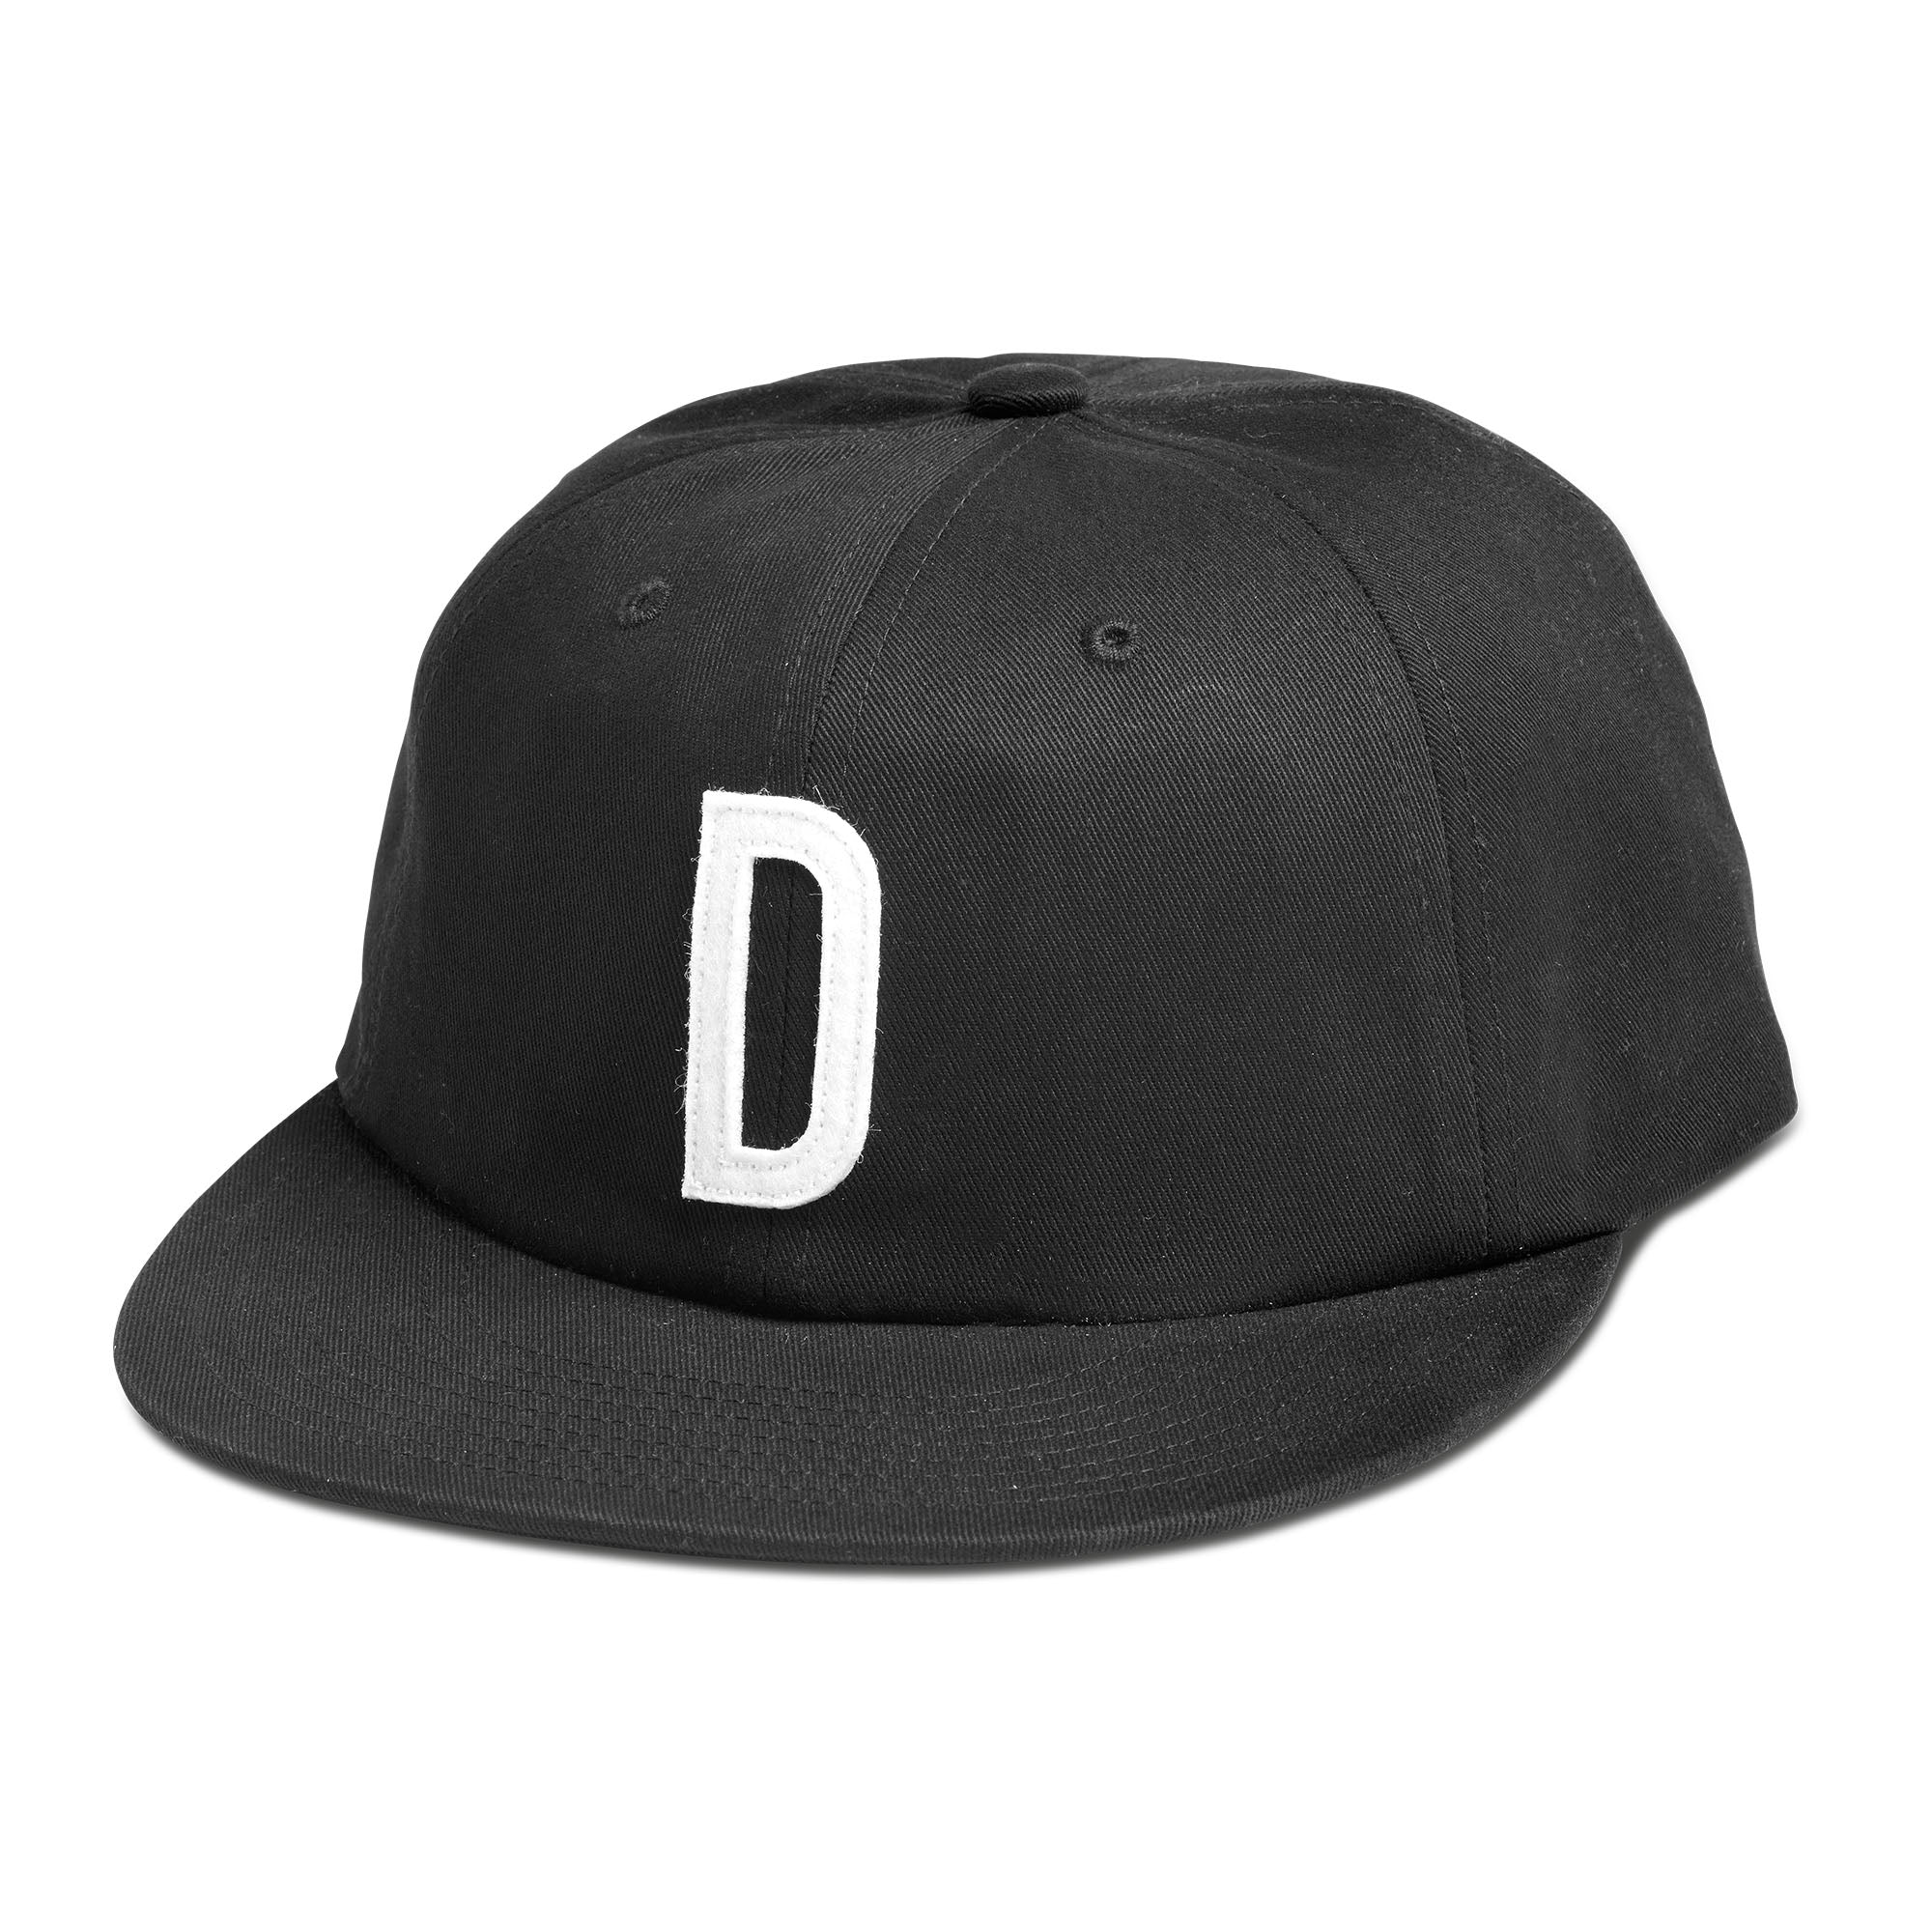 Logo 6 Panel Snapback Cap - Black Diamond Supply Company VghlF